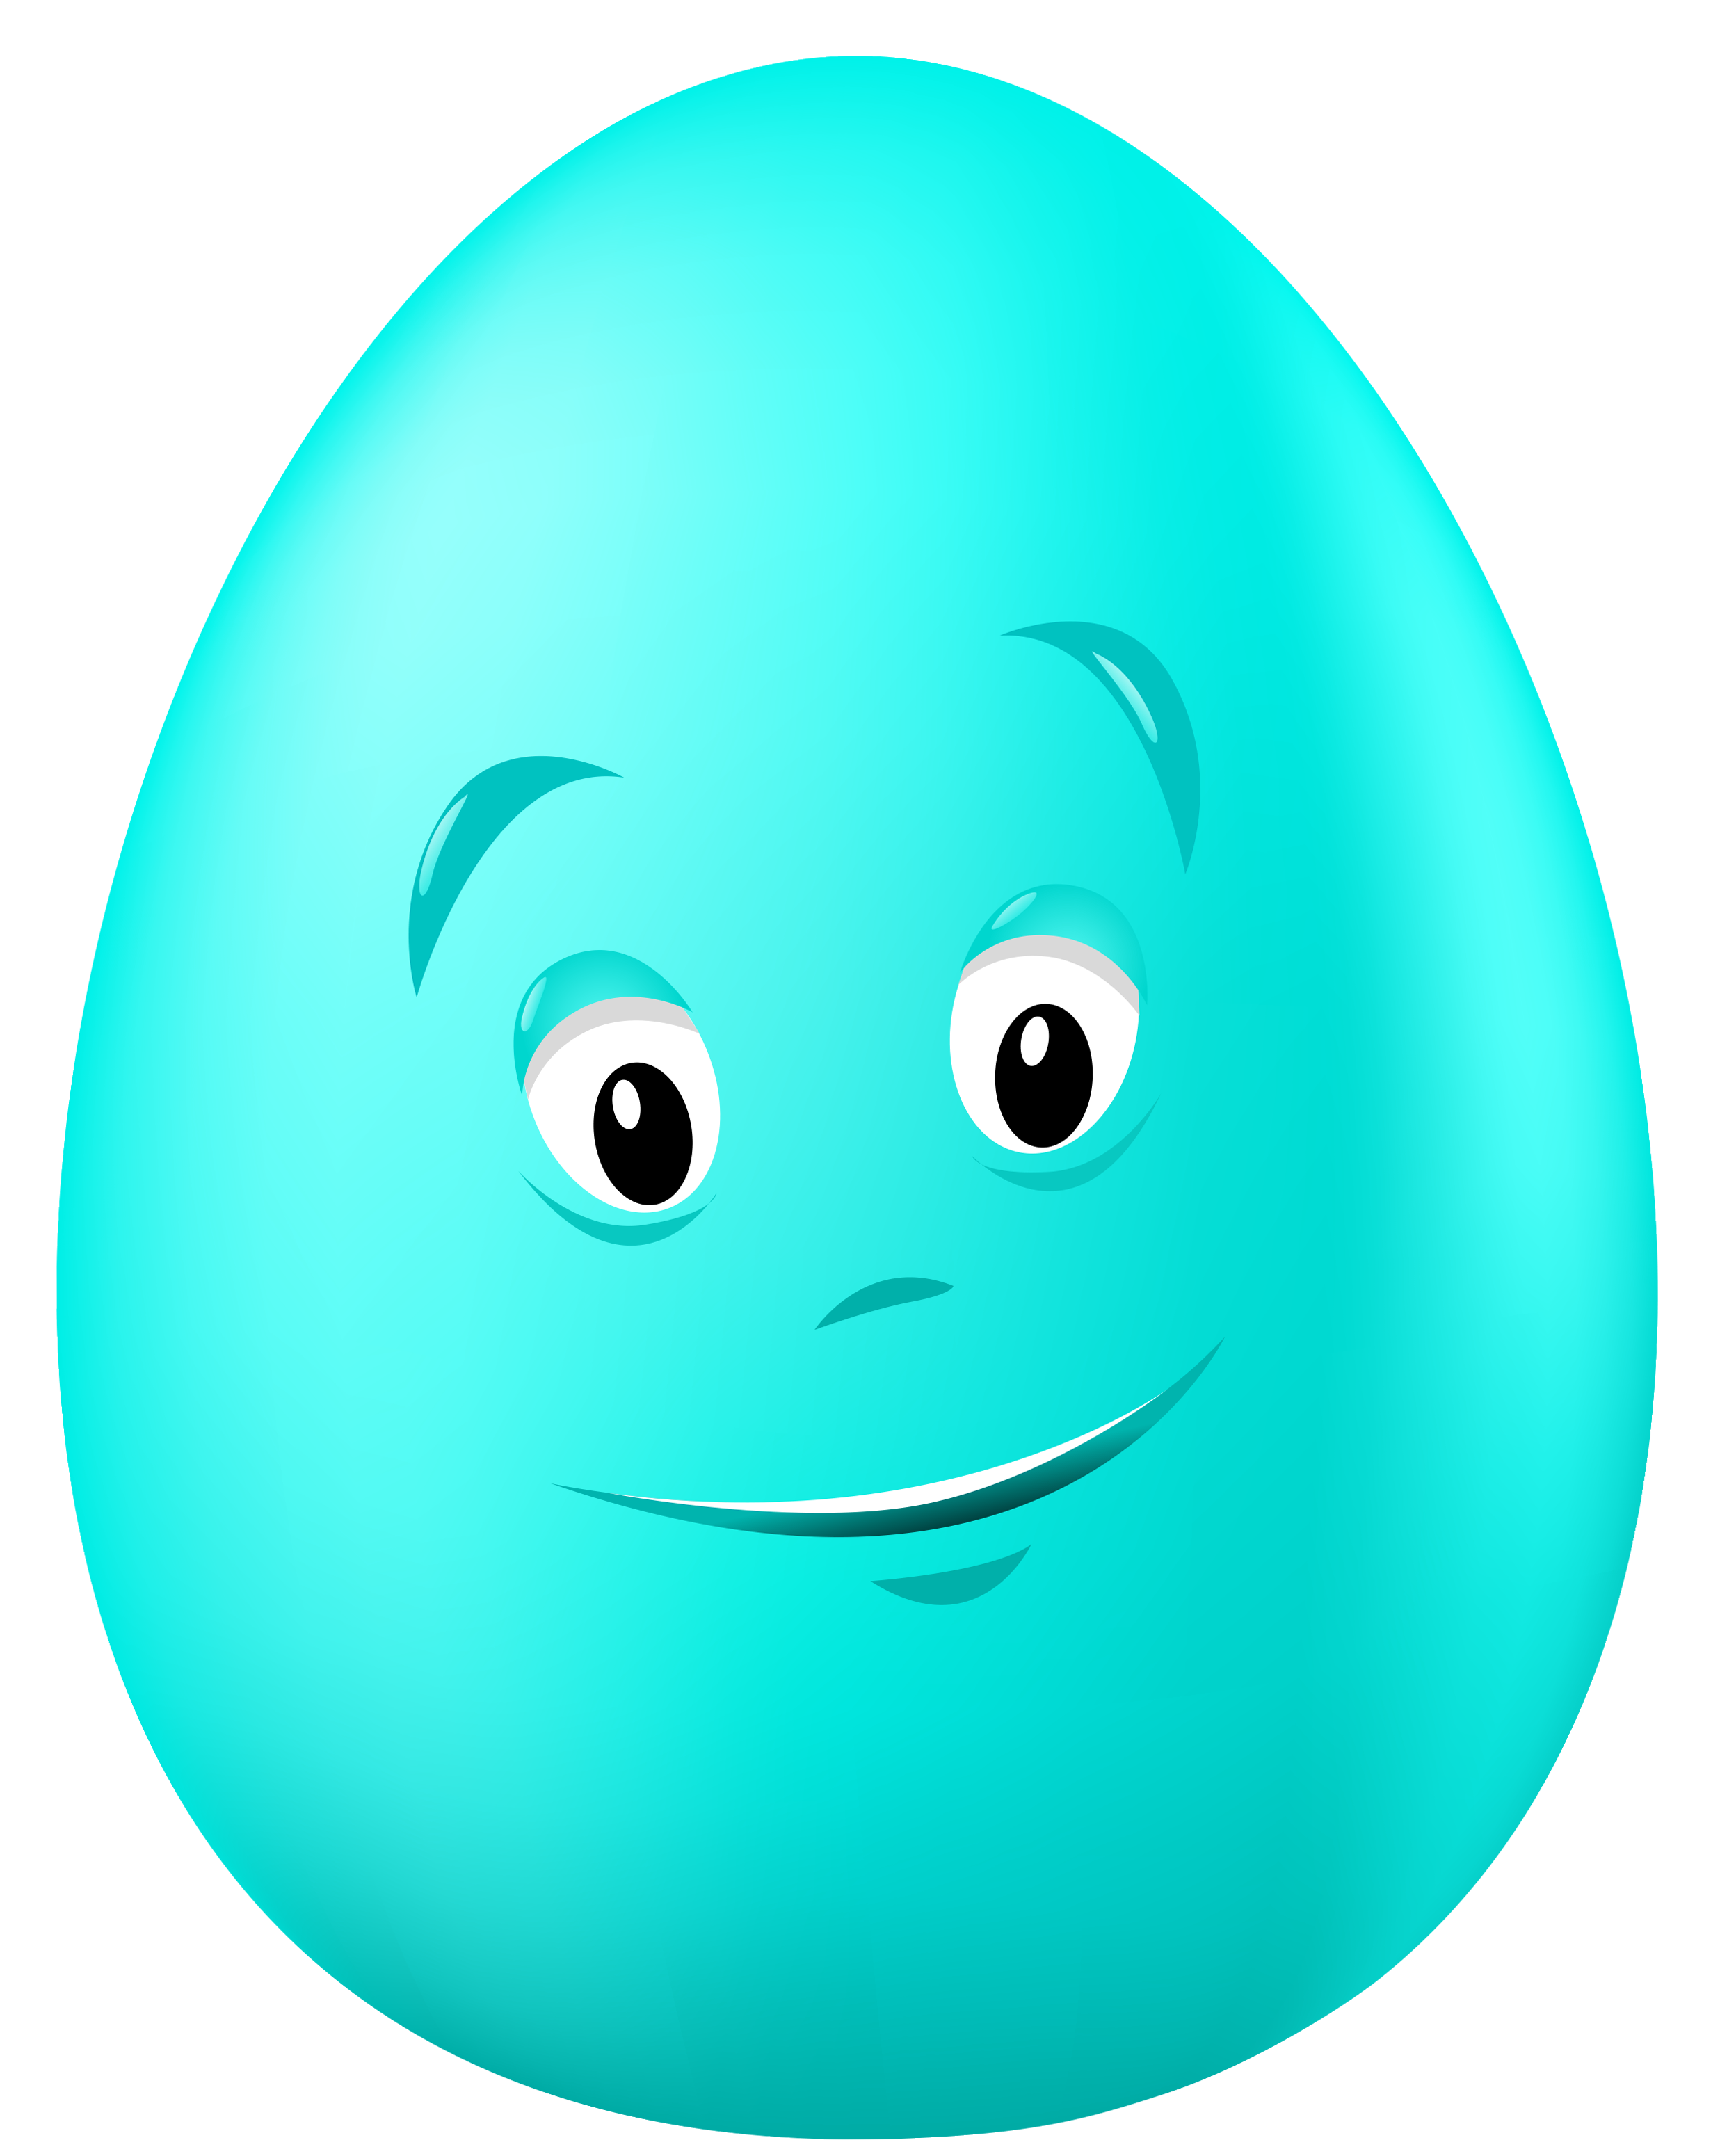 Transparent Easter Blue Egg with Face PNG Clipart Picture.